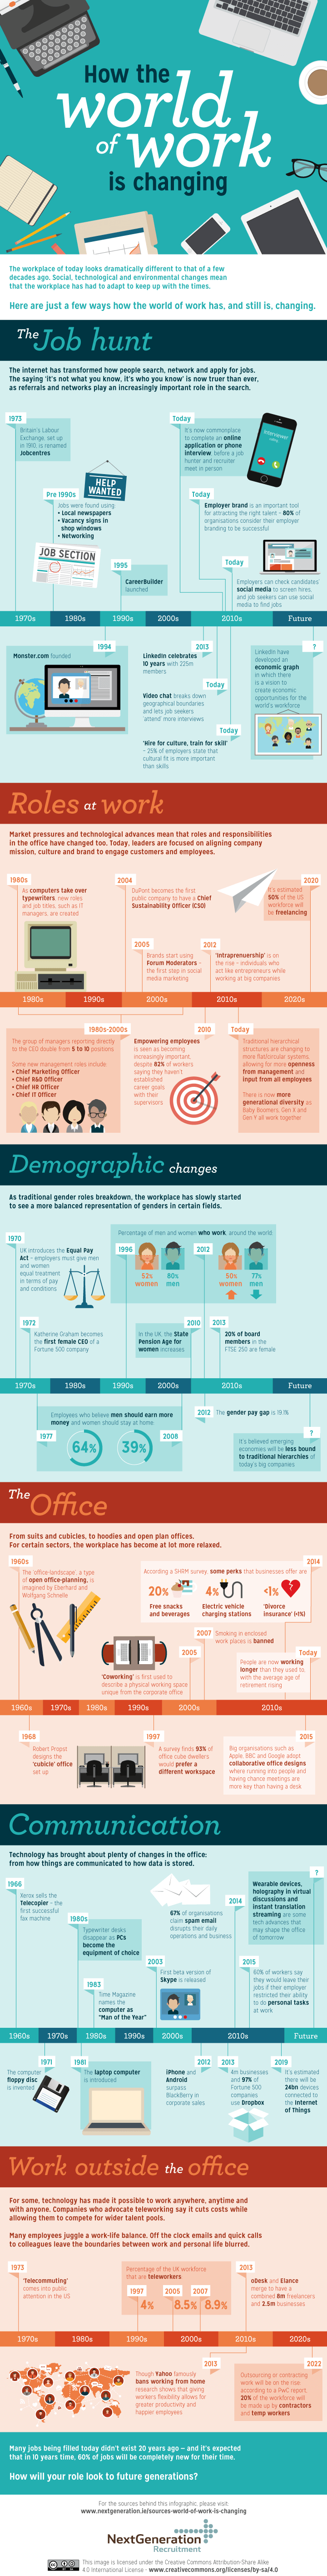 How the World of Work is Changing Infographic